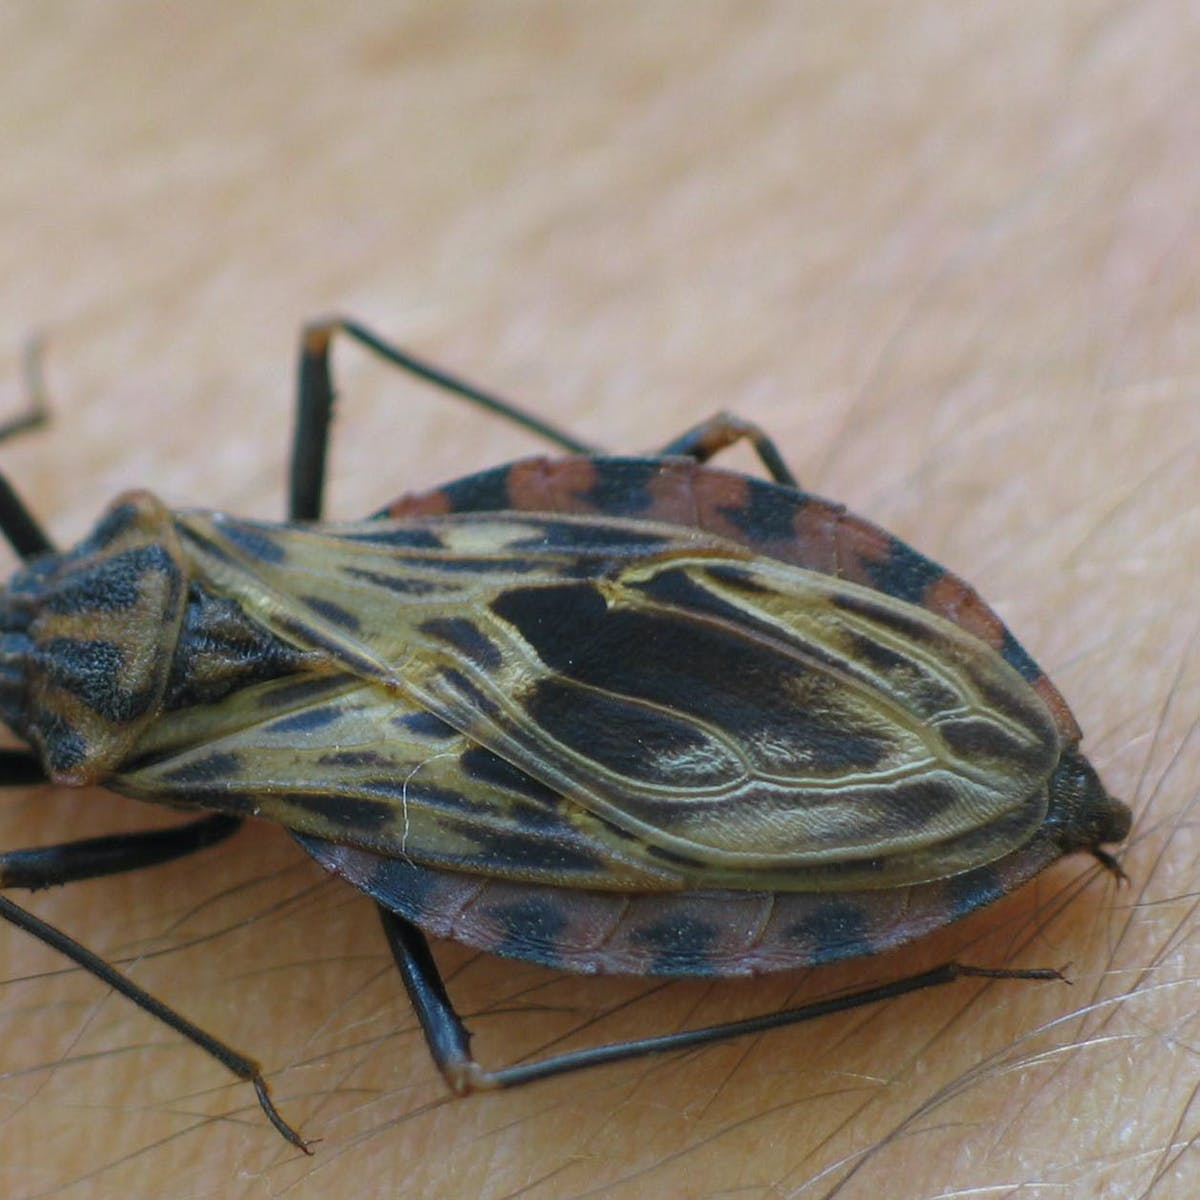 Chagas Disease: American Heart Association Warns Doctors to Be Vigilant